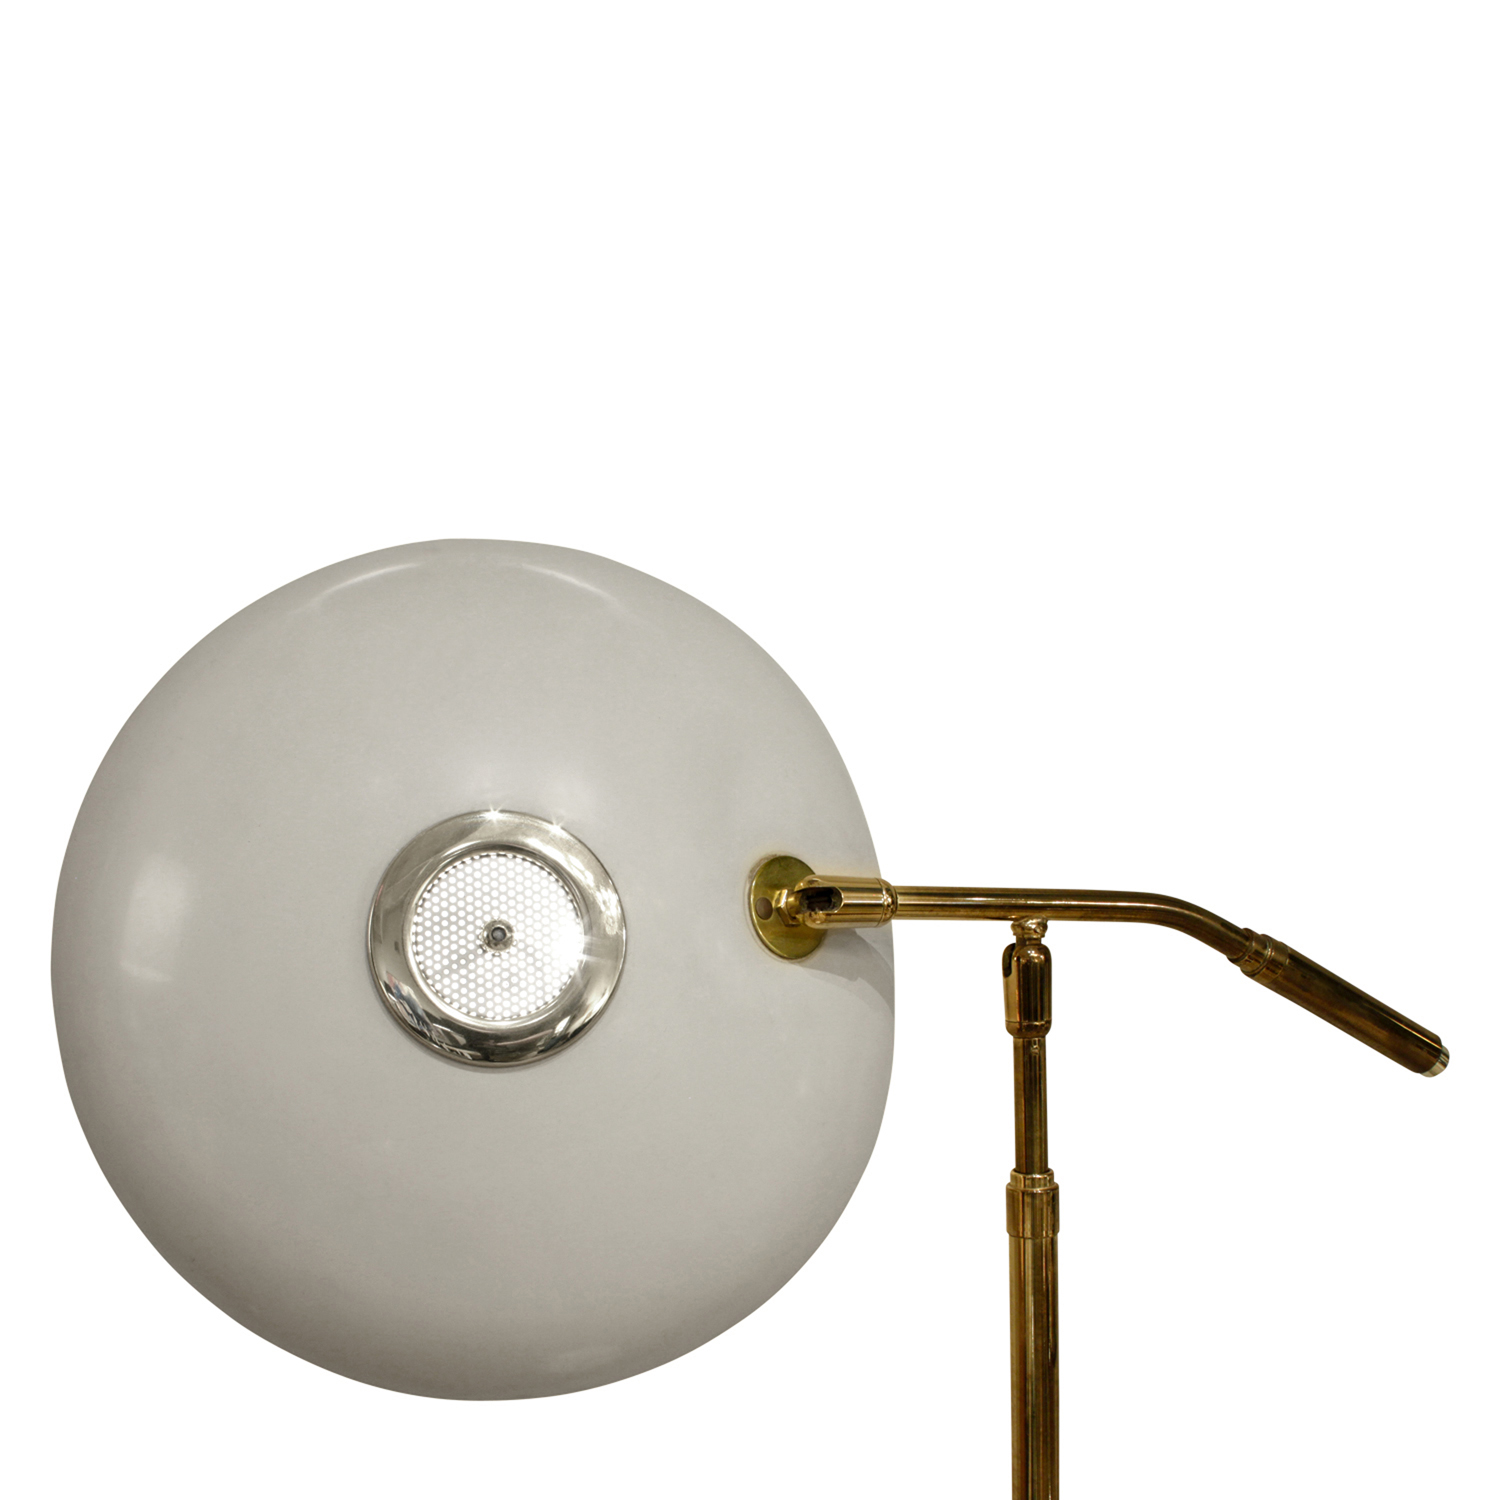 Lightolier 35 brass+ivory lqr floorlamp174 top back dtl.jpg